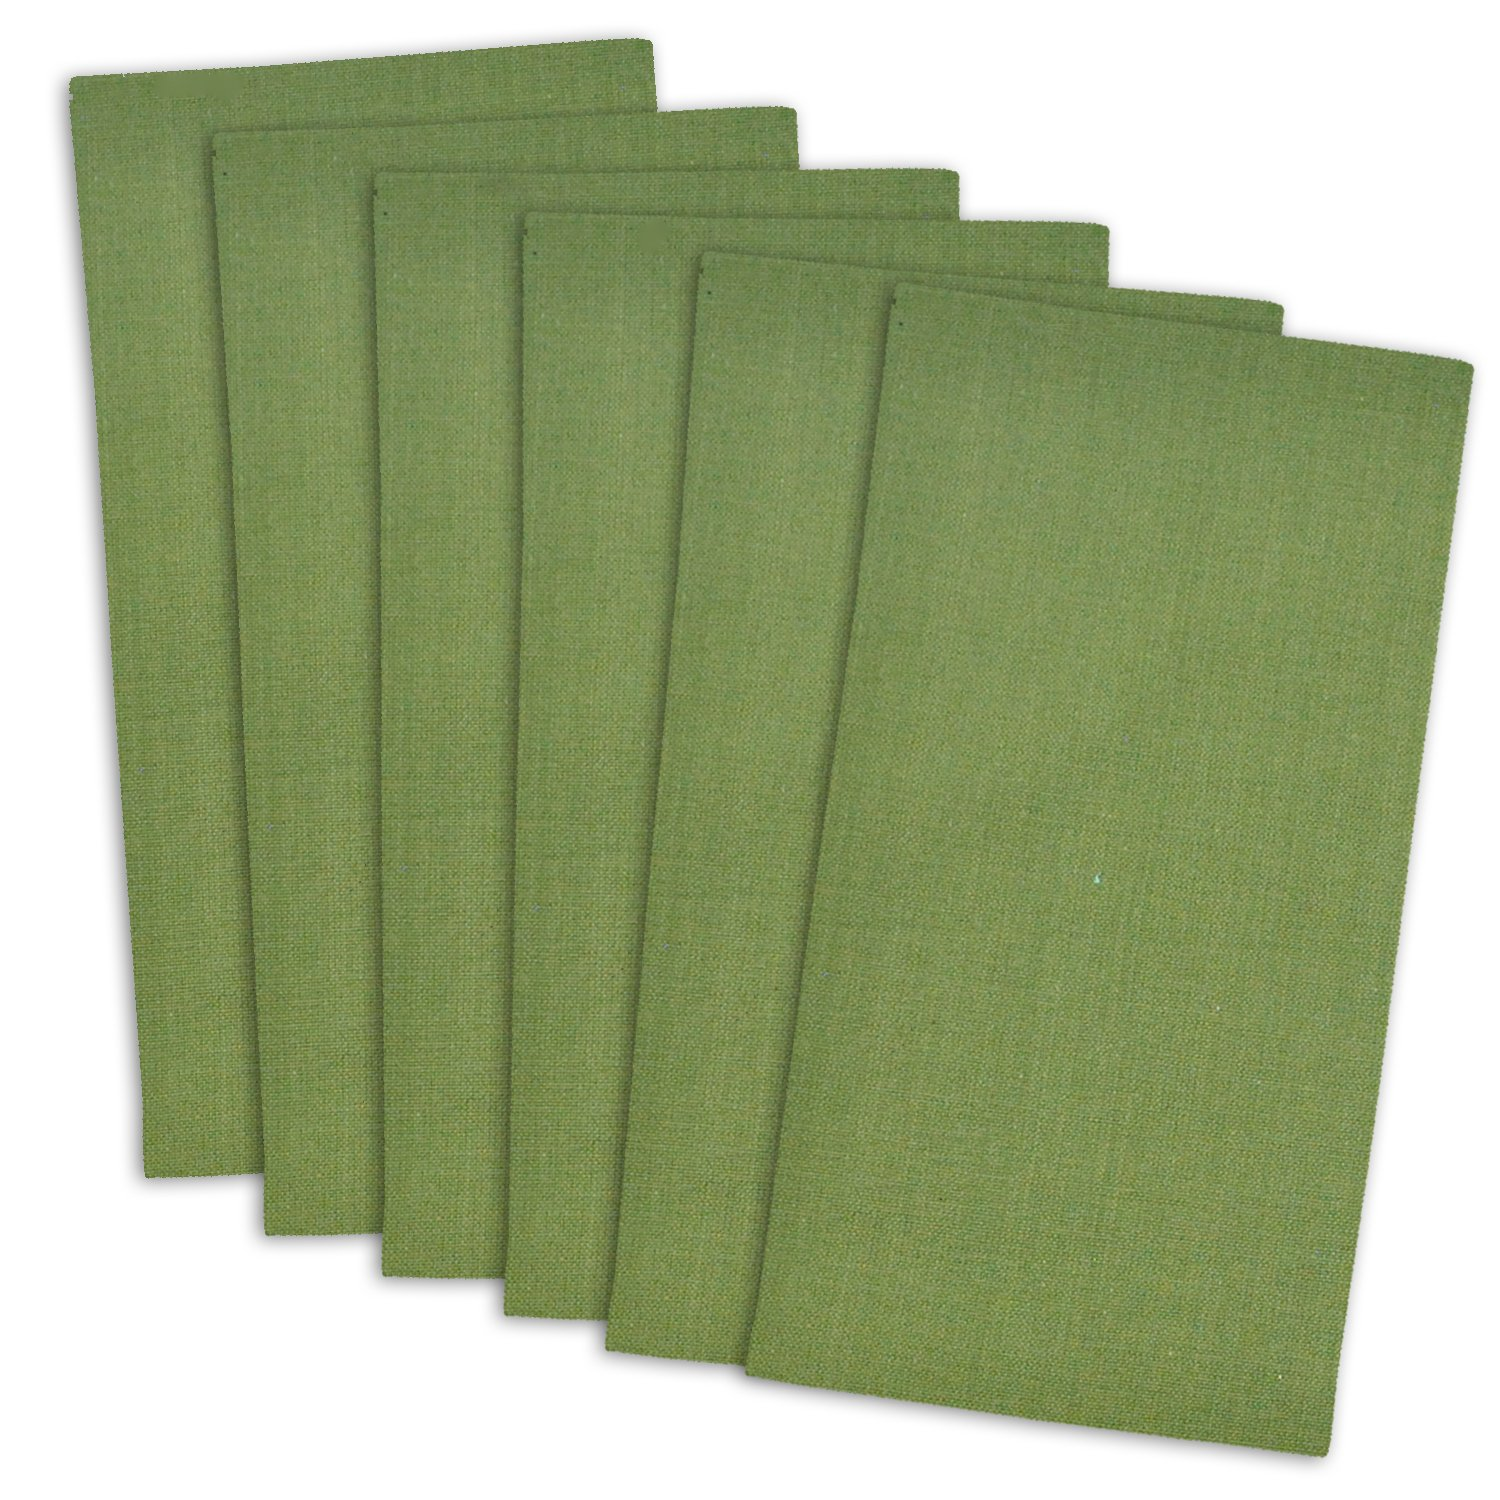 DII 100% Cotton Cloth Napkins, Oversized 20x20'' Dinner Napkins, For Basic Everyday Use, Banquets, Weddings, Events, or Family Gatherings - Set of 6, Olive Green